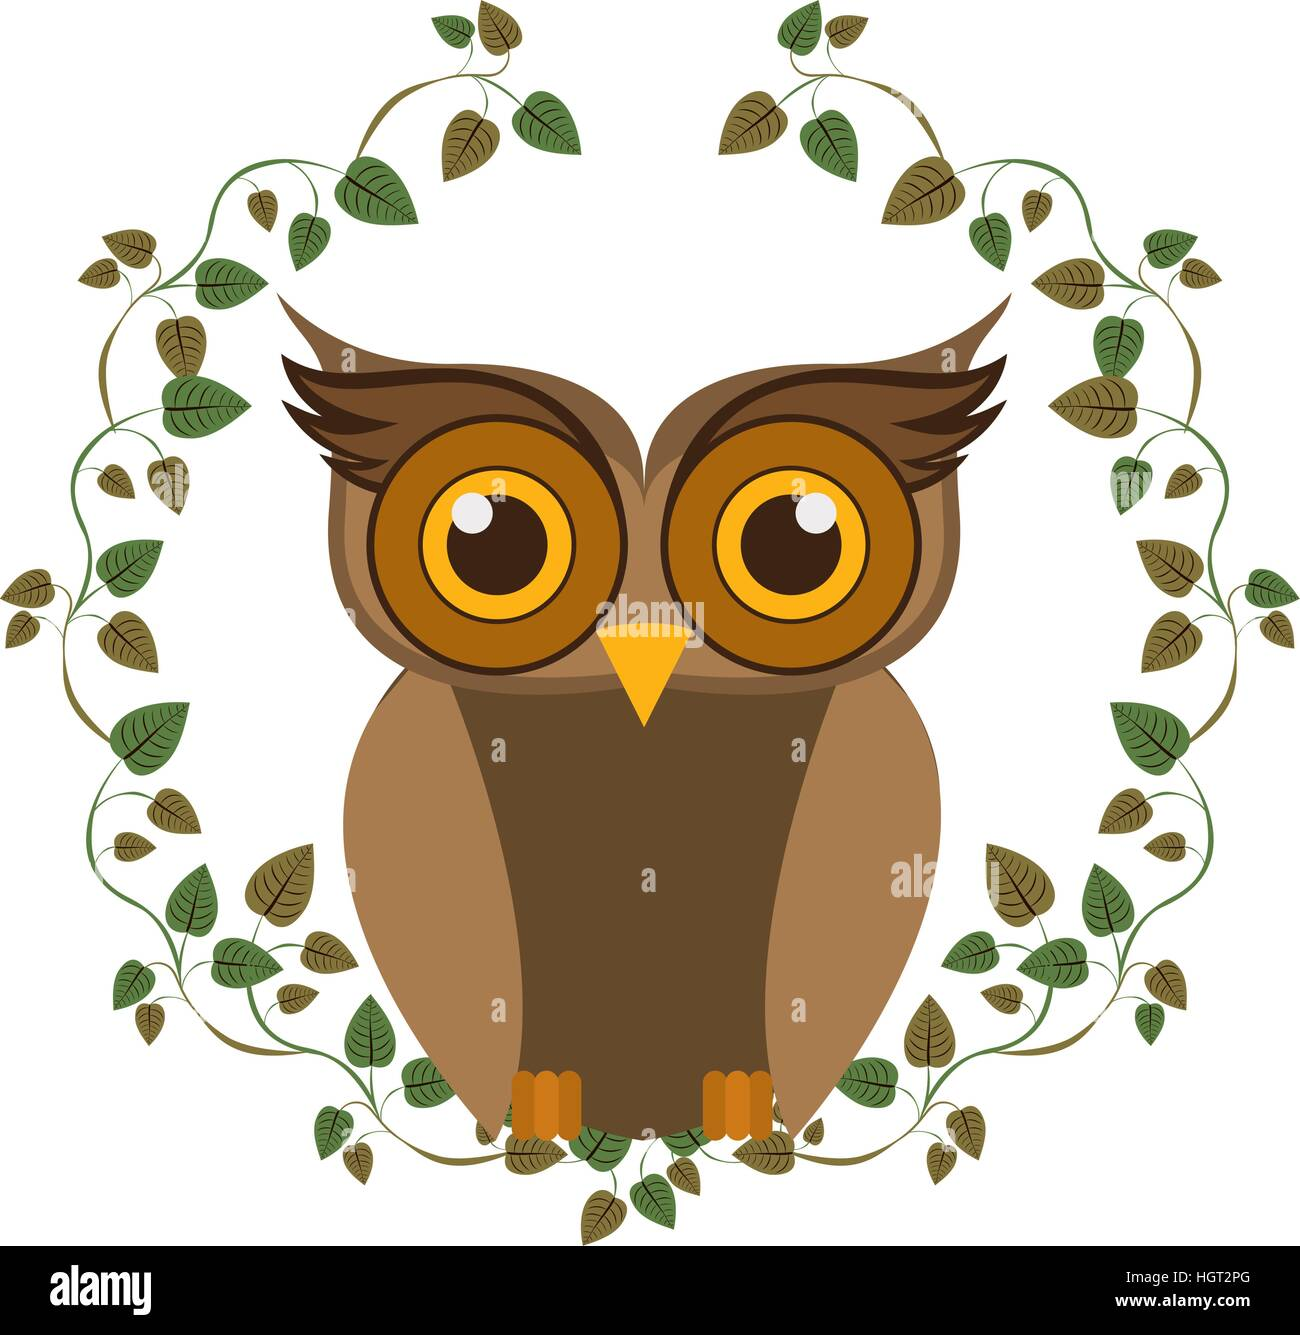 Animal Design Owl Cartoon Icon Bird Animal And Nature Theme Isolated Design